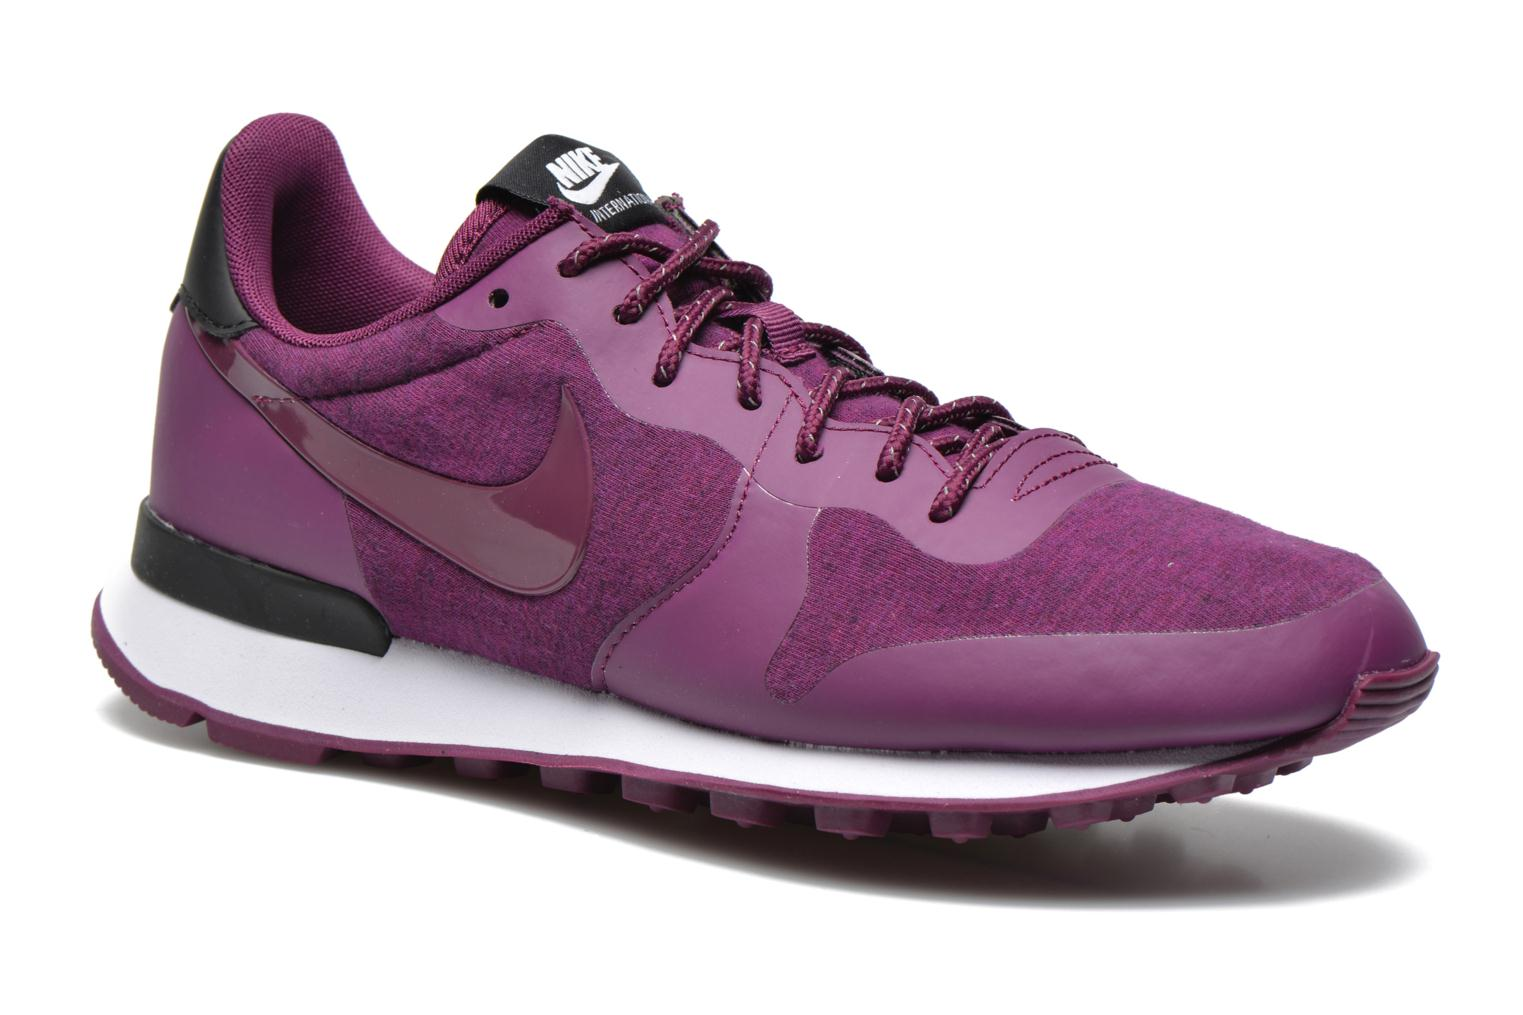 W Nike Internationalist Tp by NikeRebajas - 40%